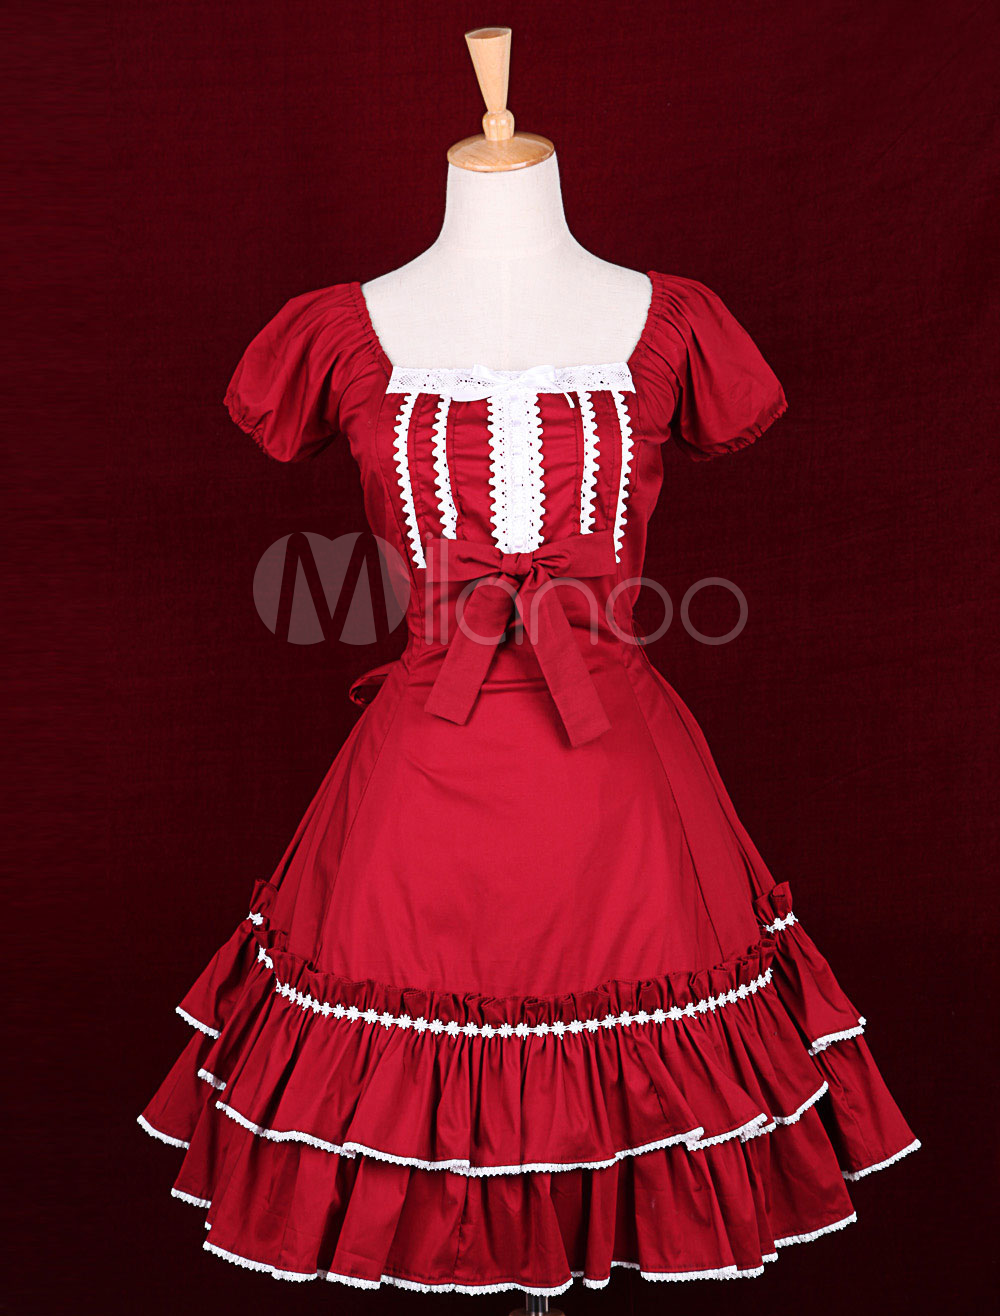 Buy Red Cotton Square Neck Short Sleeves Bow Classic Lolita Dress for $89.99 in Milanoo store